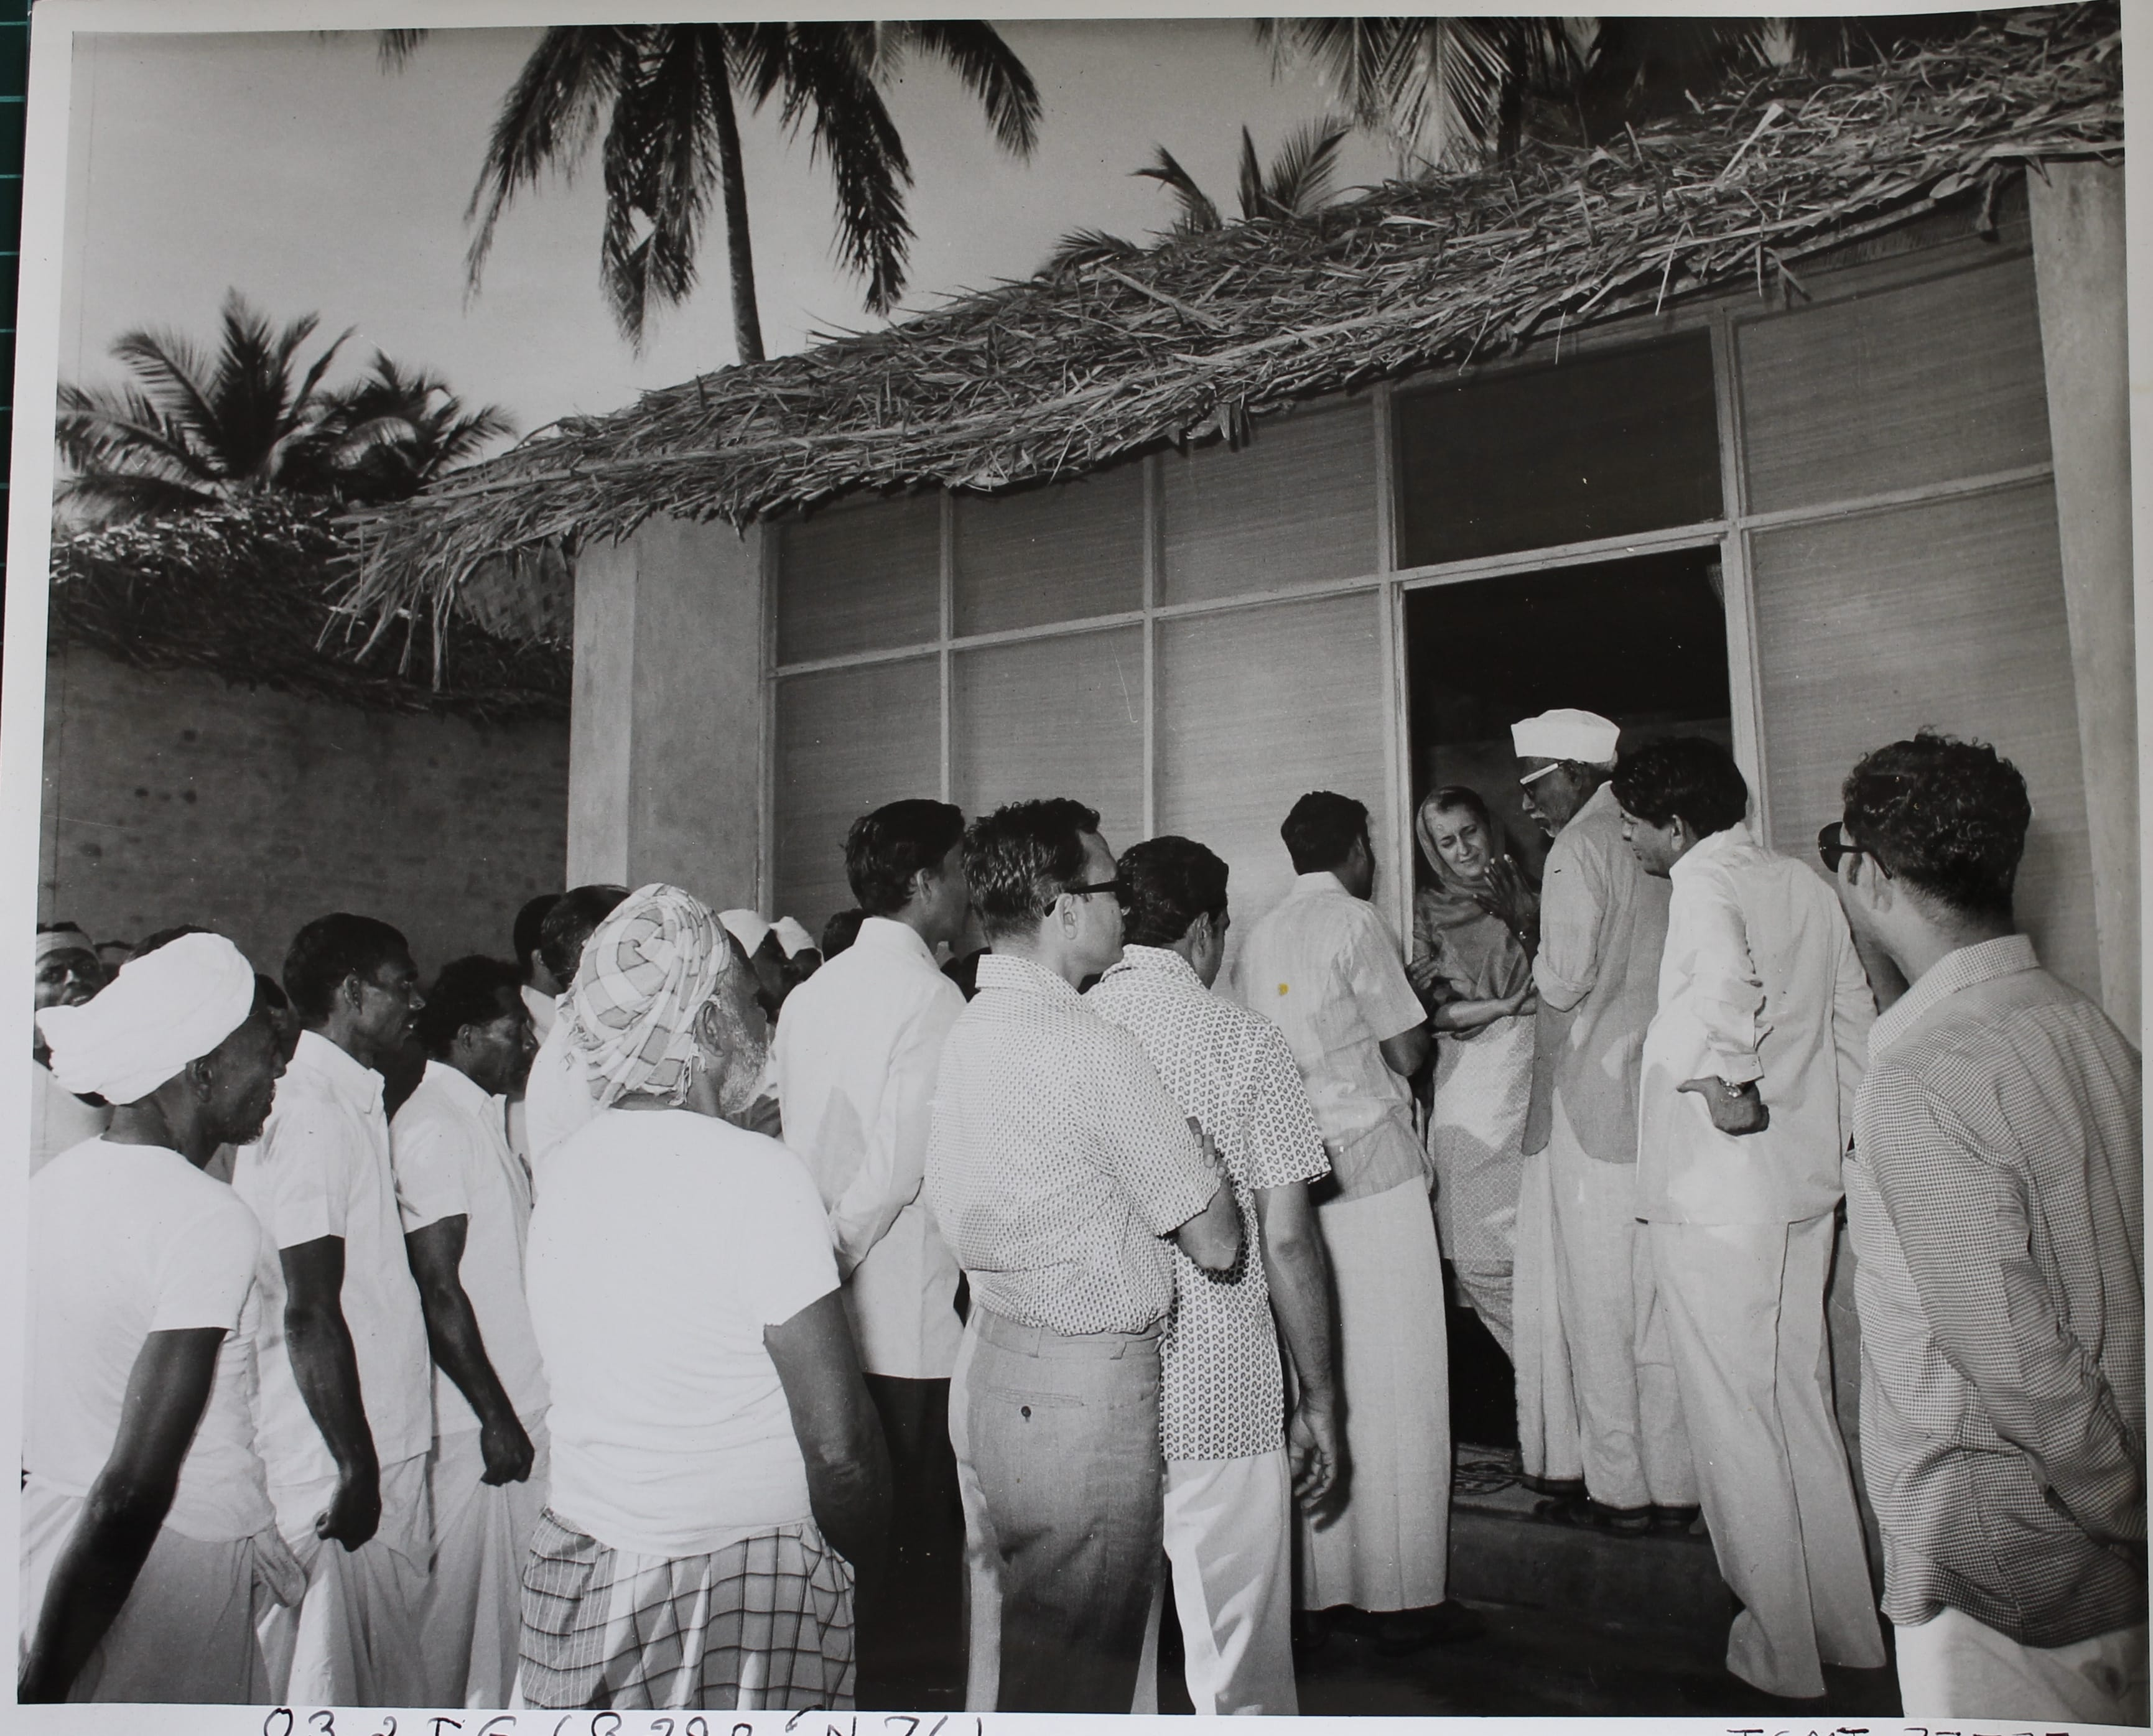 Indira Gandhi interacts with people at Bangaram during her three day visit to Laccadive (now Lakshadweep), Minicoy, and Aminidivi Islands (October 10, 1969). Bangaram, Lakshadweep Islands. Courtesy: Indira Gandhi Memorial Trust